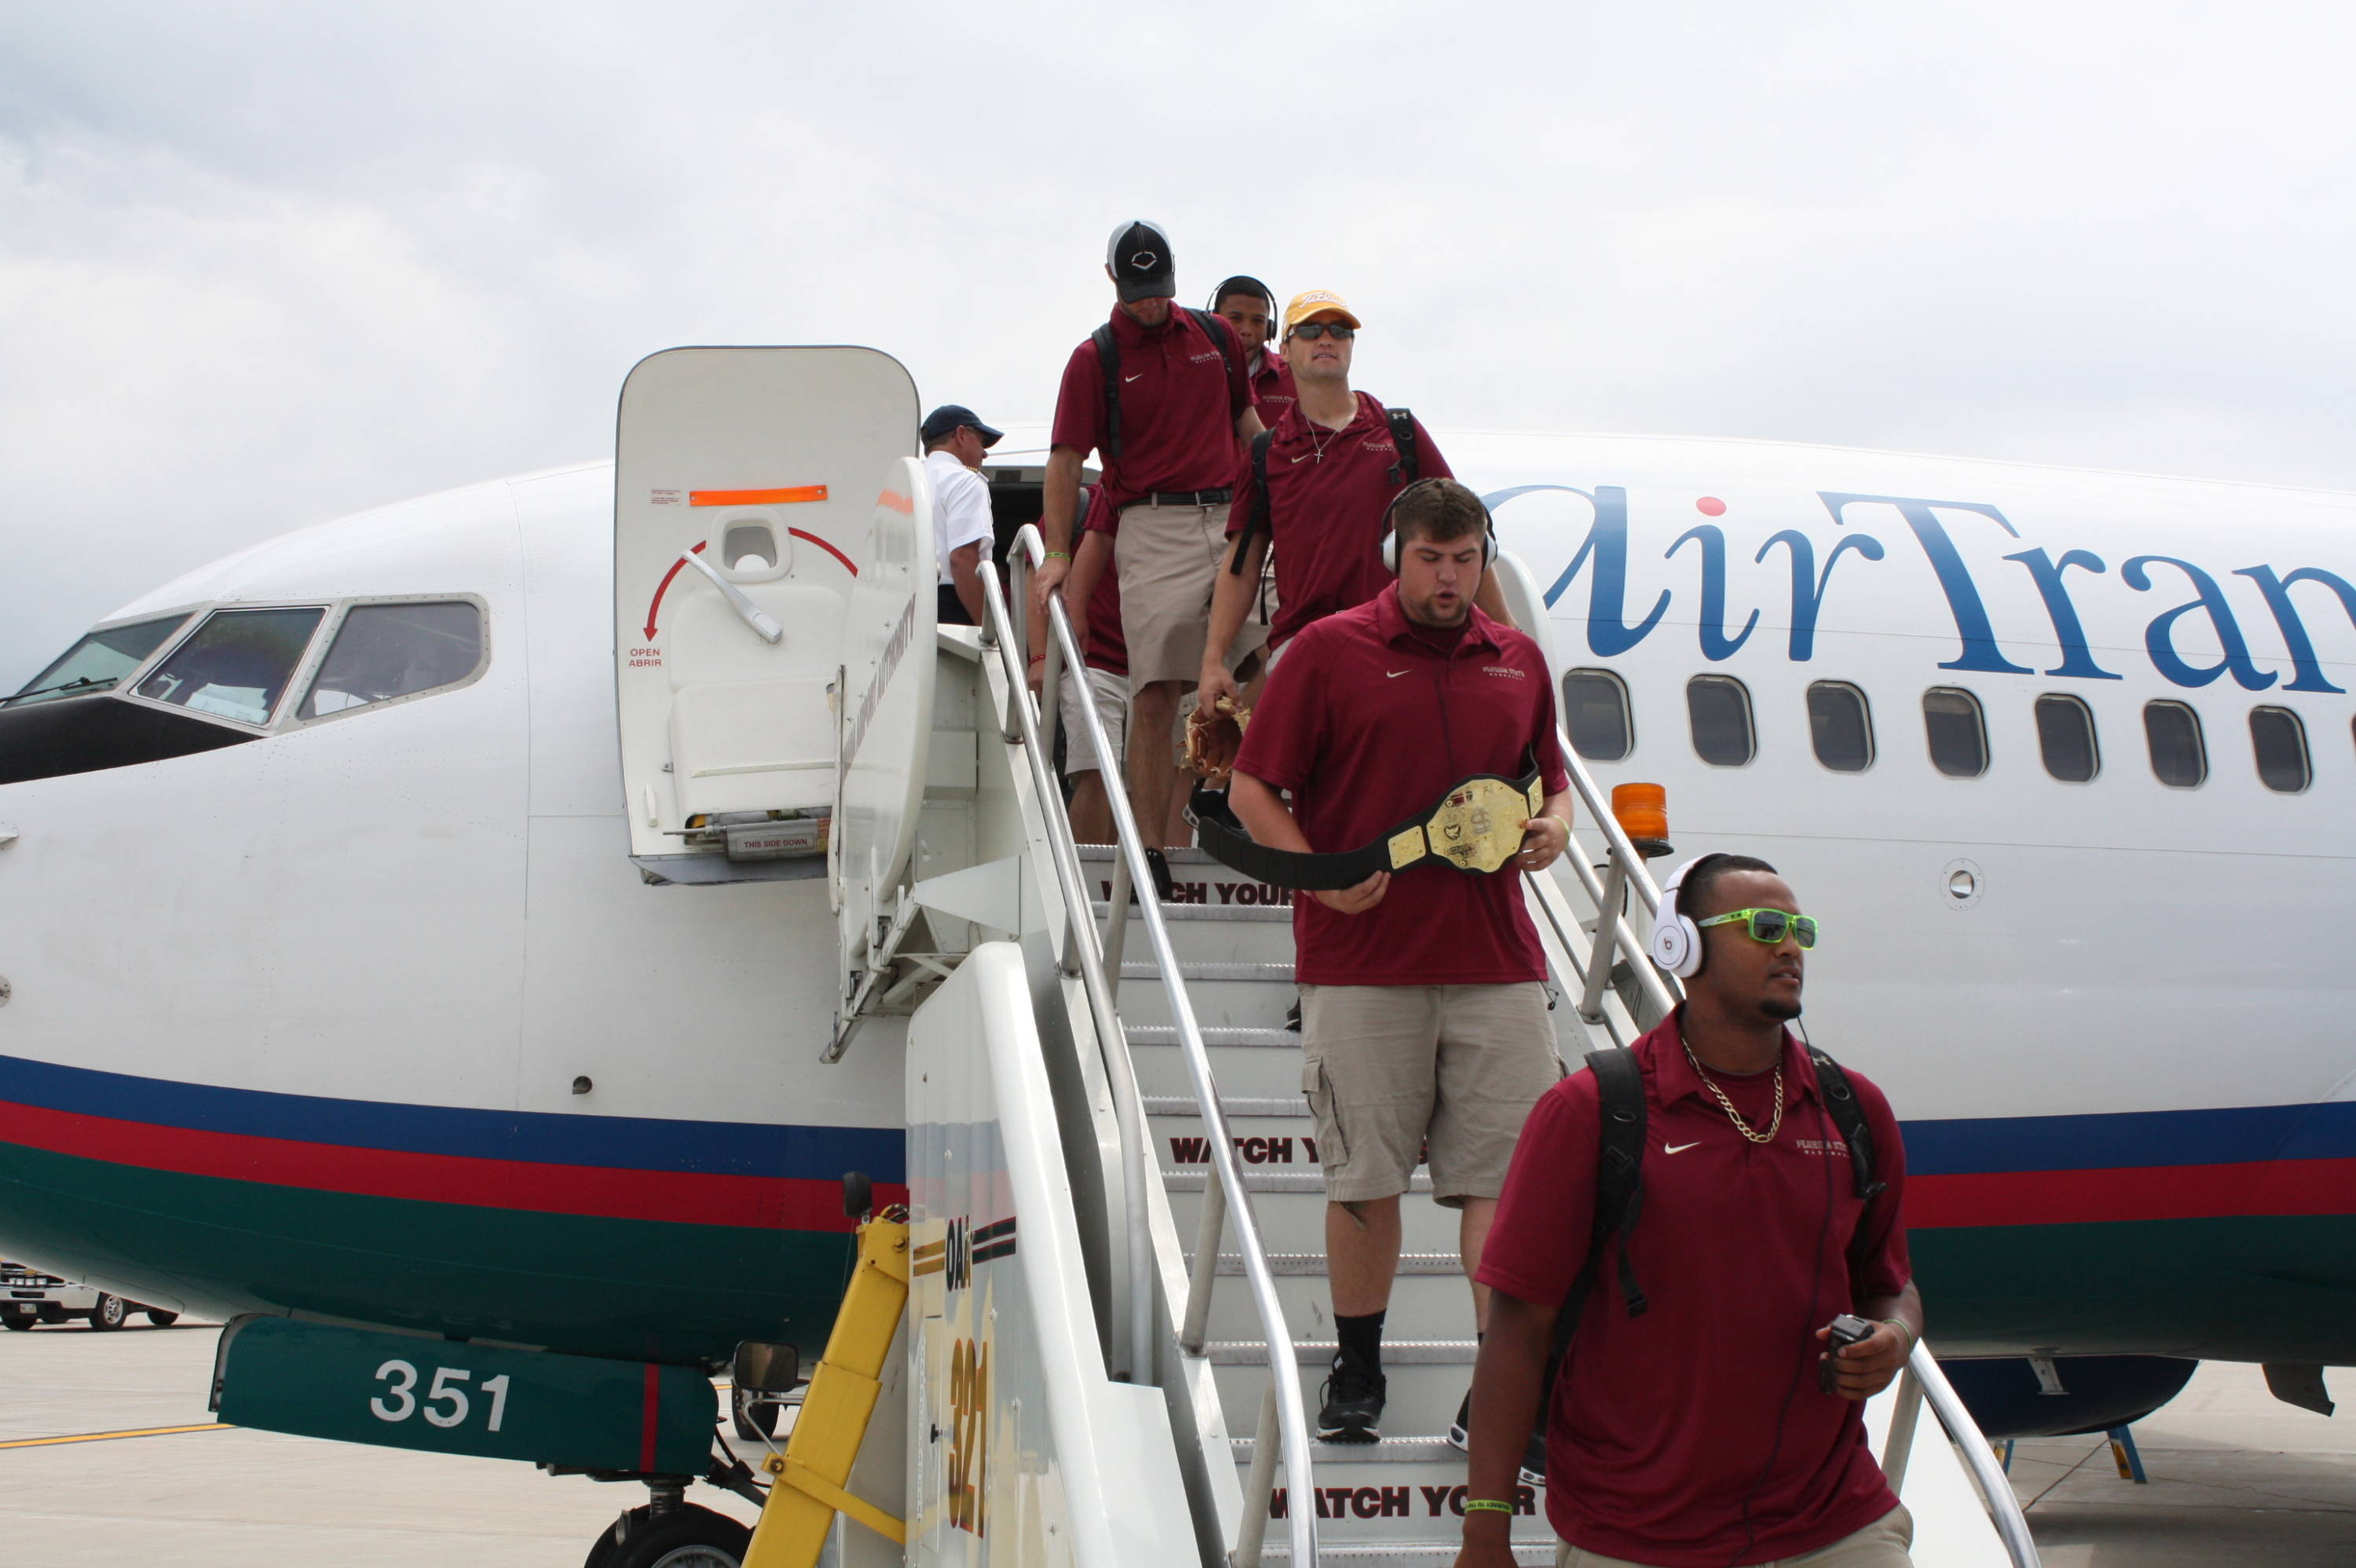 The Seminoles departing the plane in Omaha.